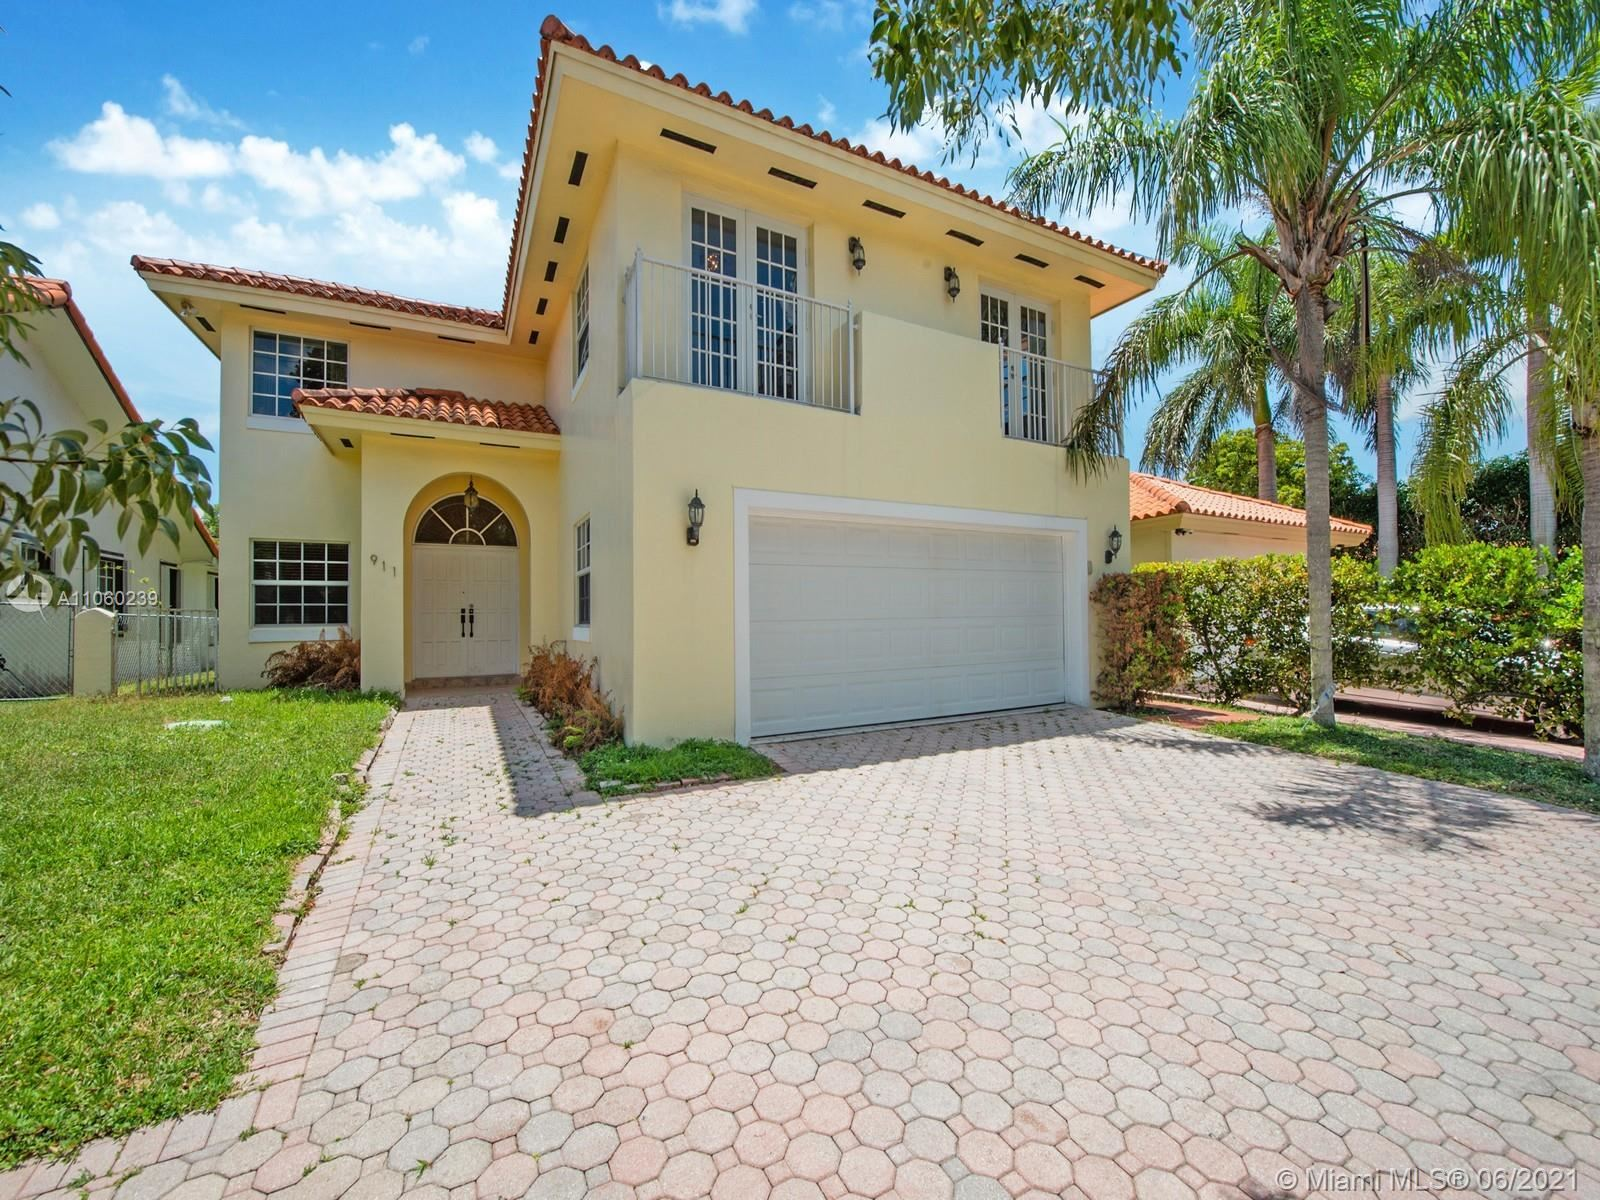 911 SW 57th Ave, Coral Gables, FL 33144 - #: A11060239